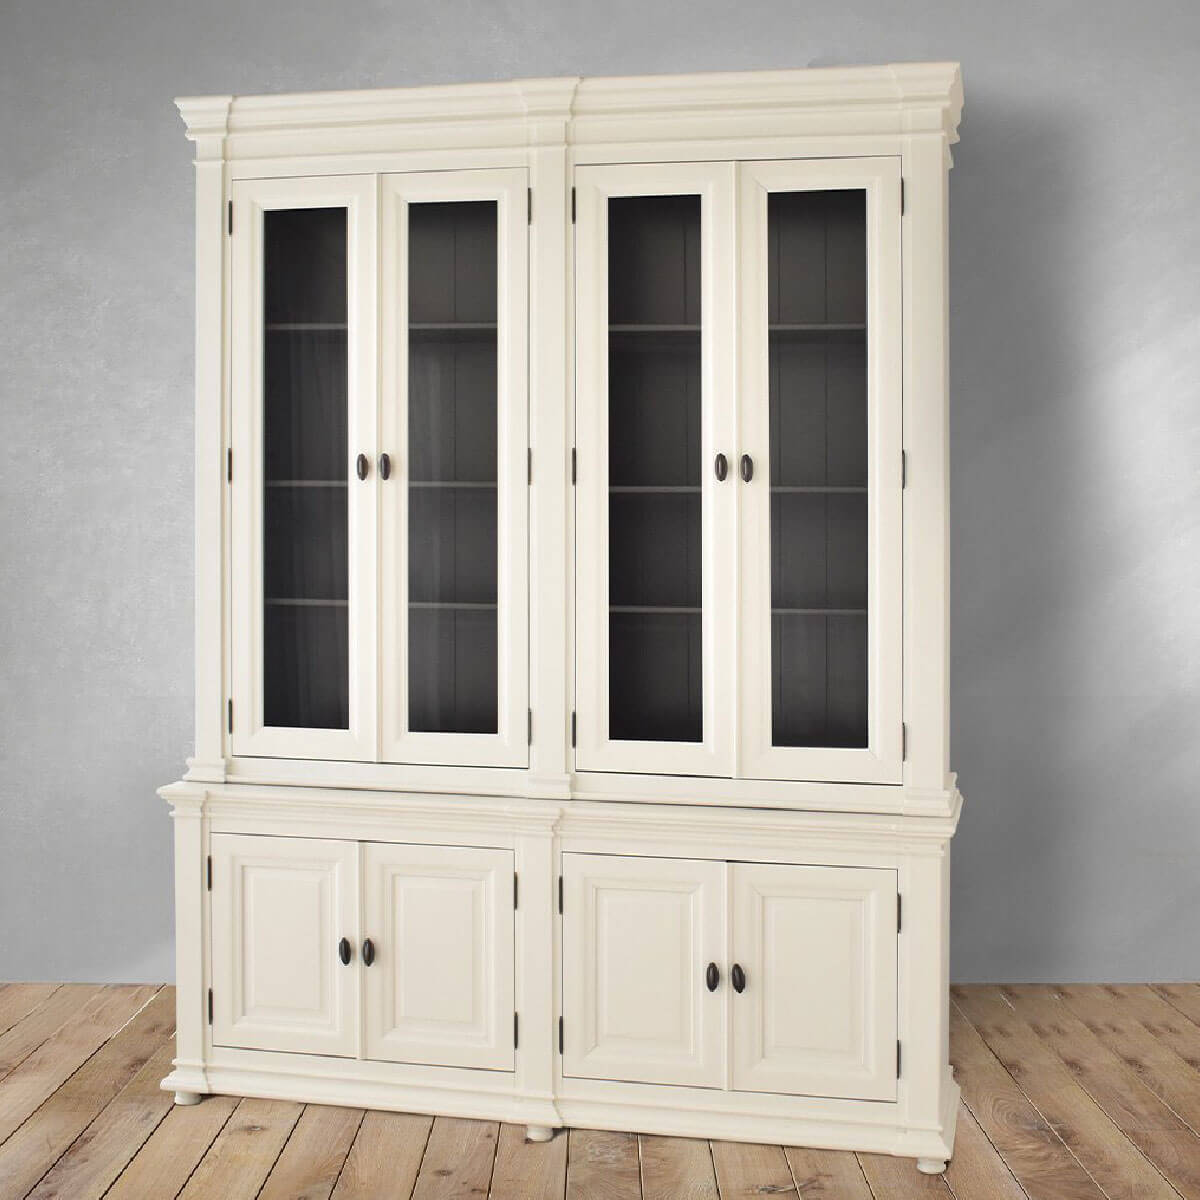 Eleanor-4-Door-cabinet-Cozy-Home-Dubai